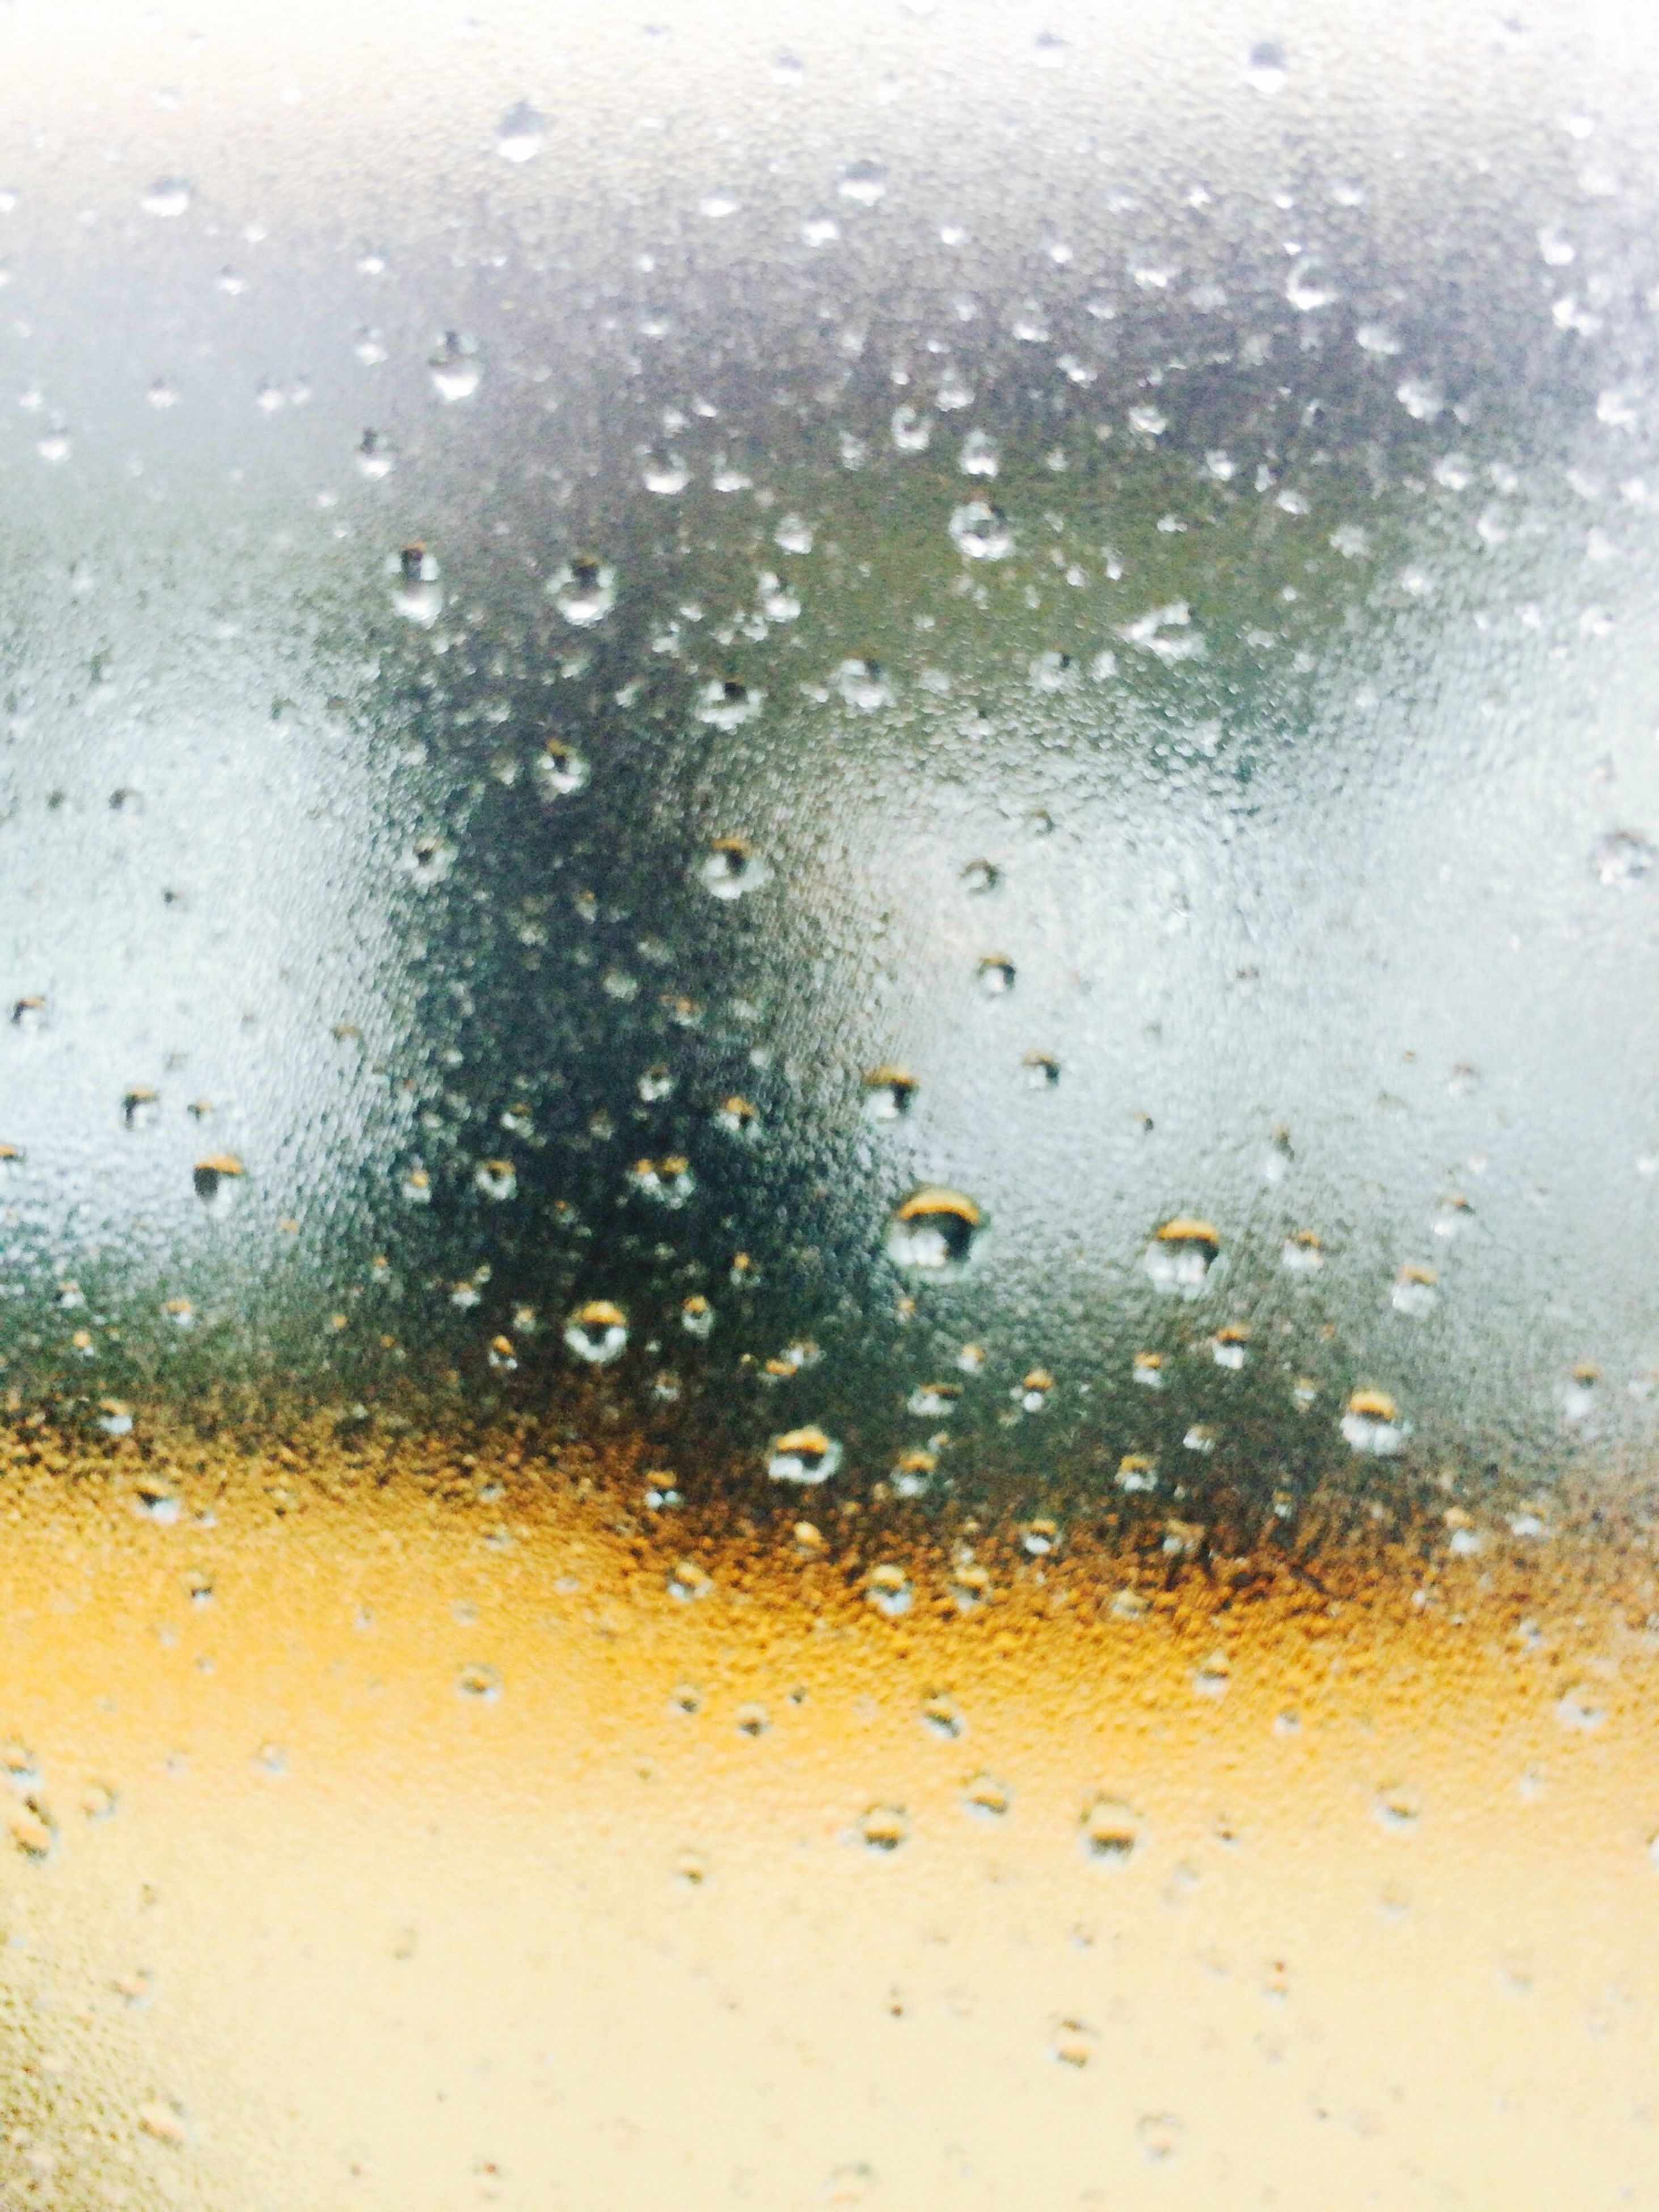 drop, wet, window, water, transparent, rain, glass - material, indoors, raindrop, weather, full frame, backgrounds, season, glass, close-up, focus on foreground, sky, water drop, droplet, condensation